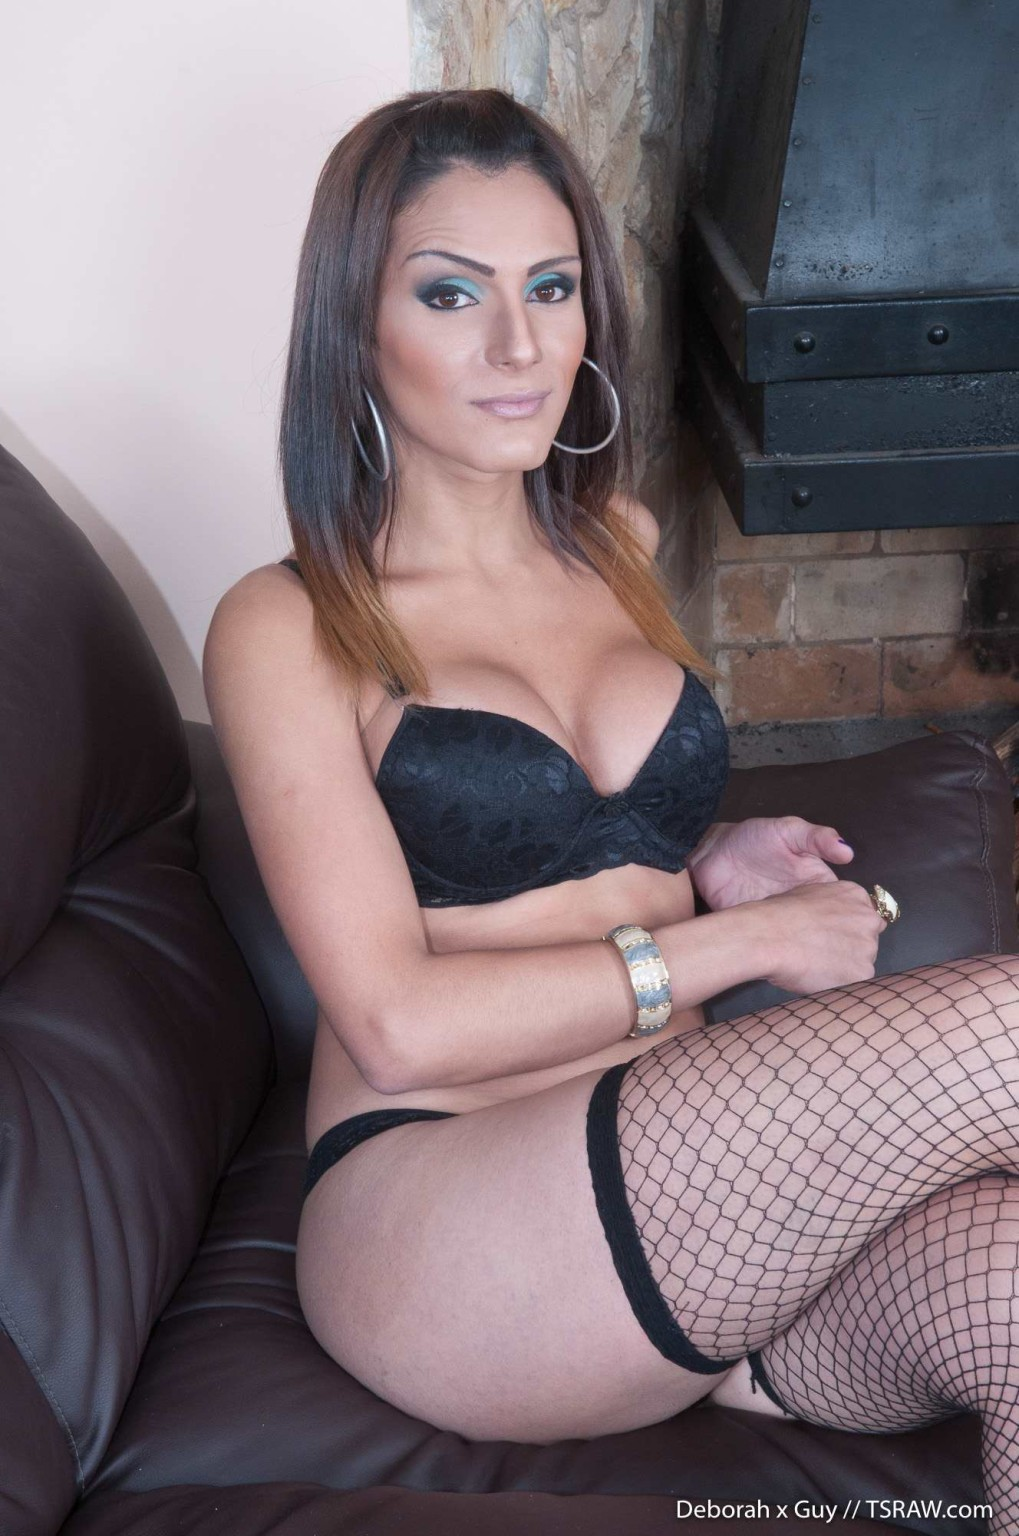 chick looking for bed fun in biel